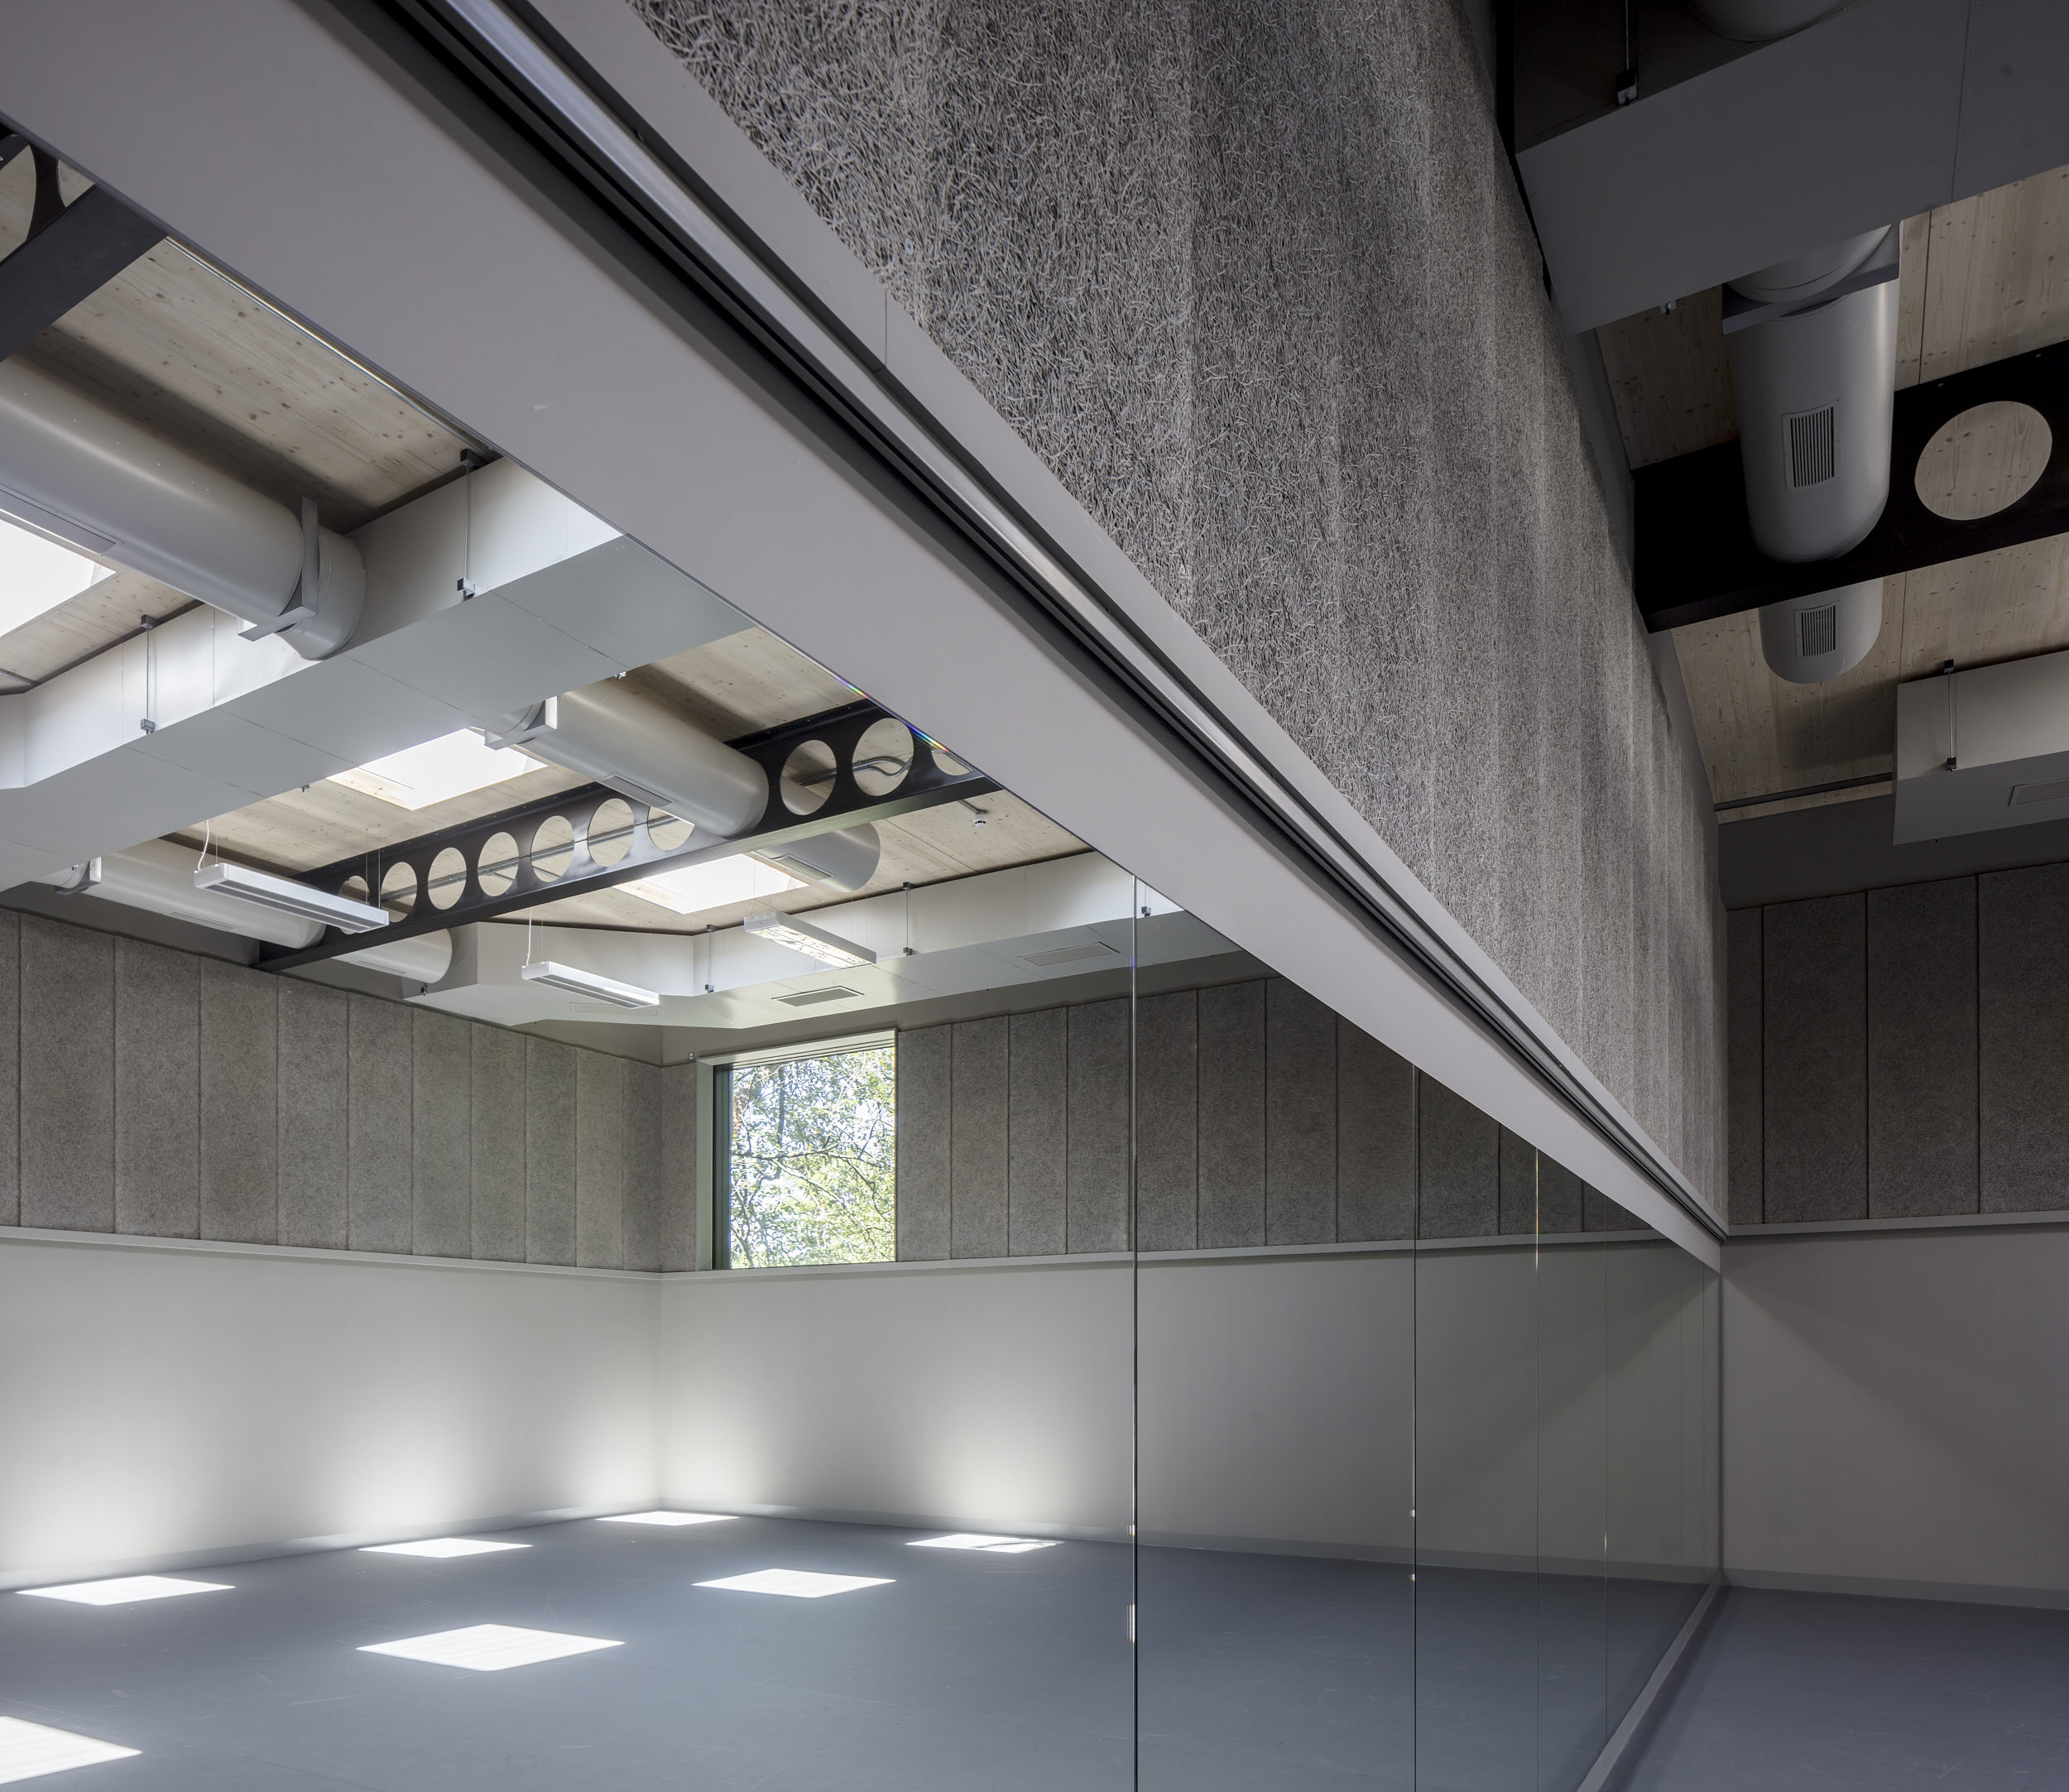 Rehearsal space features mirrors, rooflights and a controlled and subtle material palette.